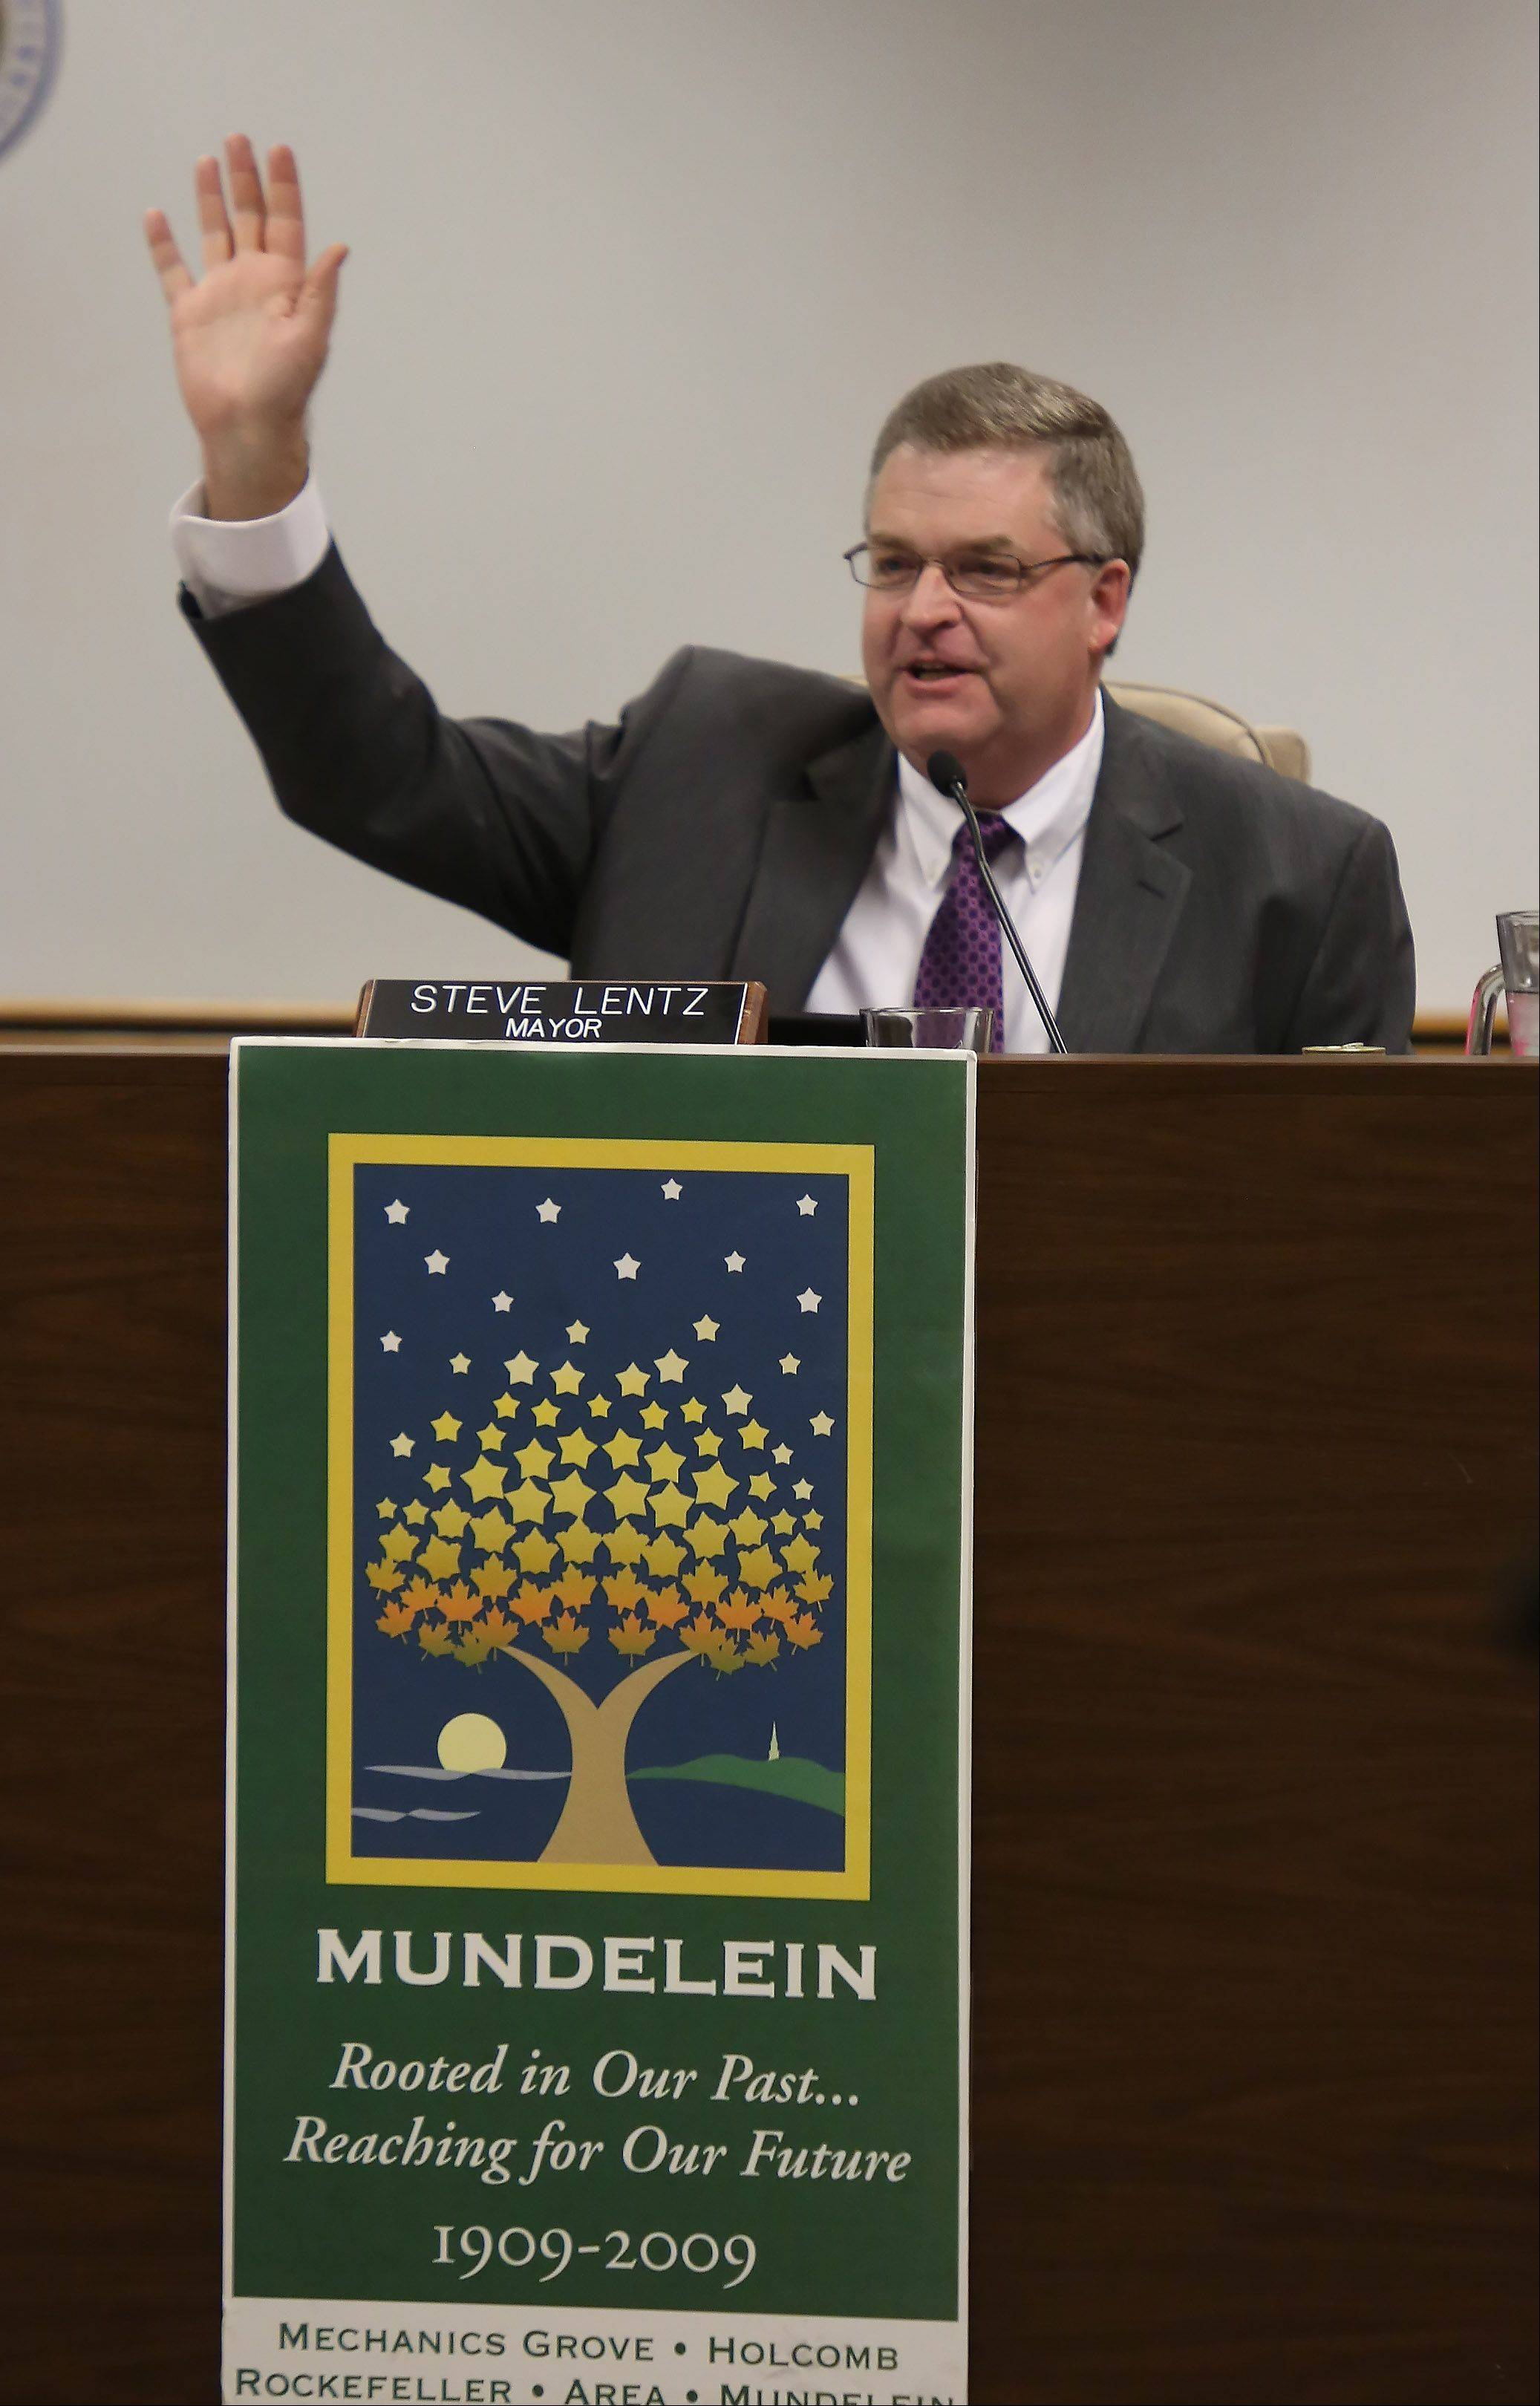 Steve Lentz waves to family and friends after he was sworn in as the new Mundelein mayor during the village board meeting Monday at the Mundelein Fire Station.